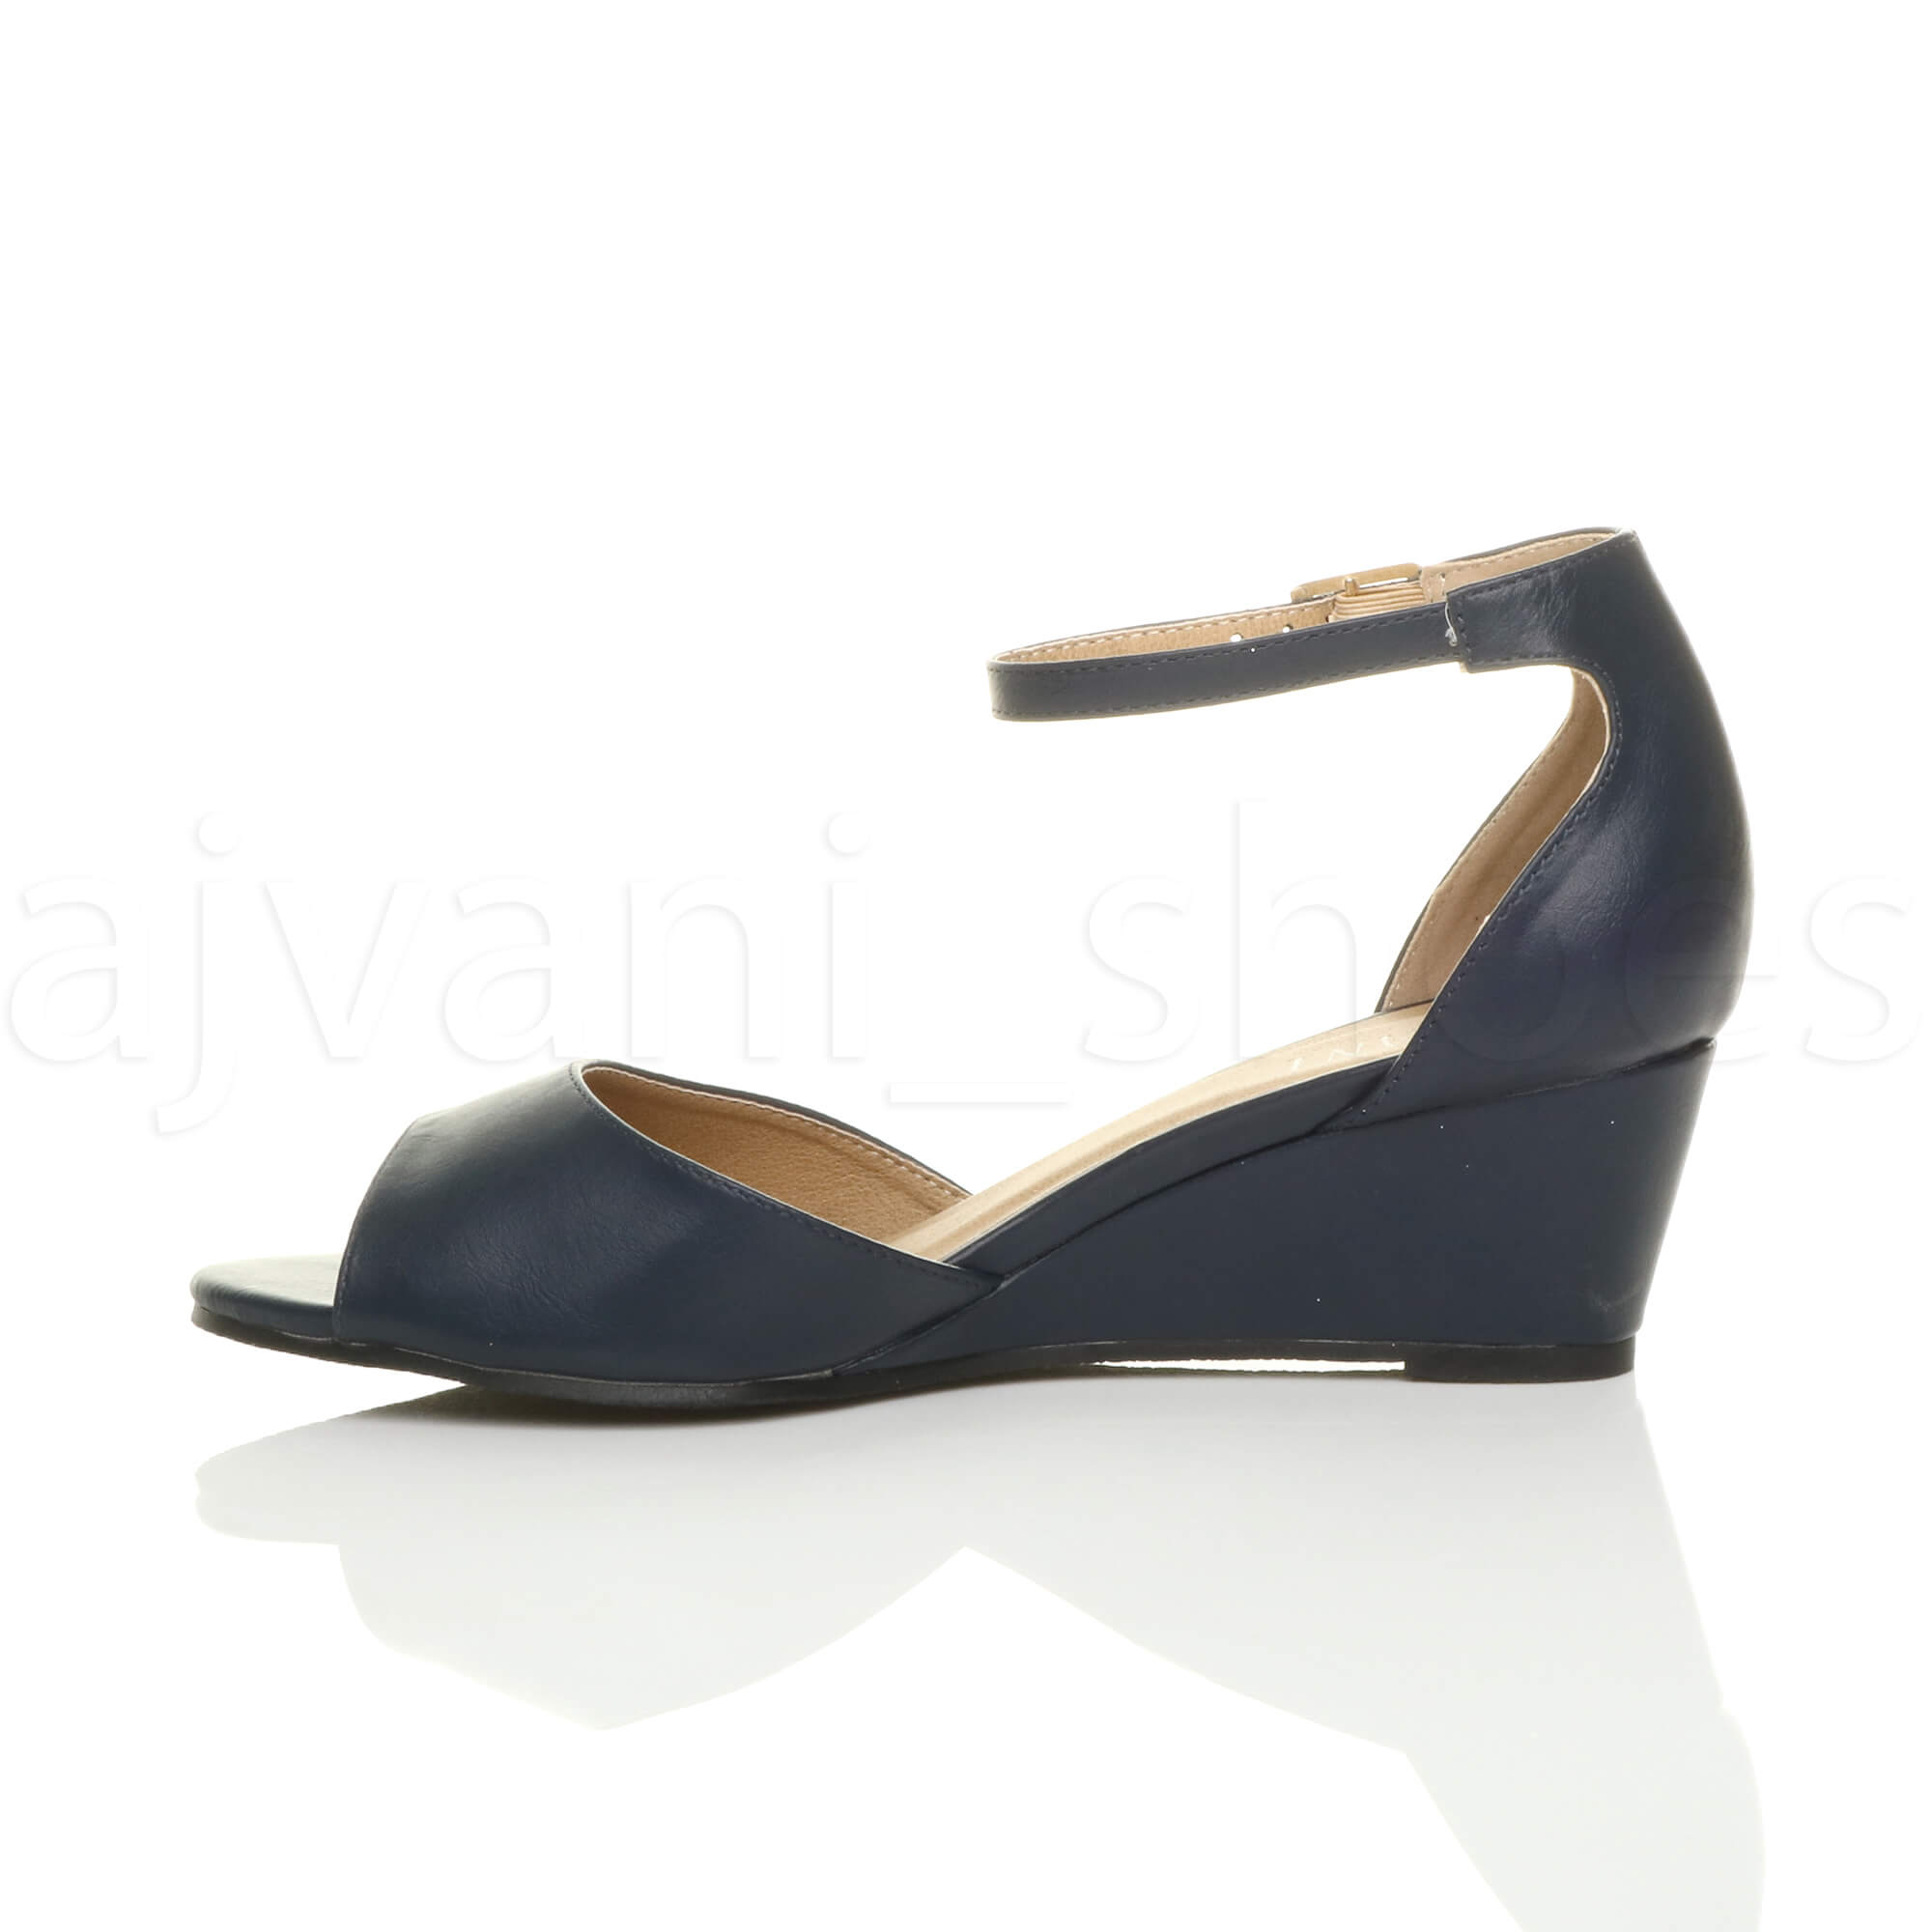 WOMENS-LADIES-LOW-MID-WEDGE-HEEL-ANKLE-STRAP-SMART-CASUAL-EVENING-SANDALS-SIZE thumbnail 84